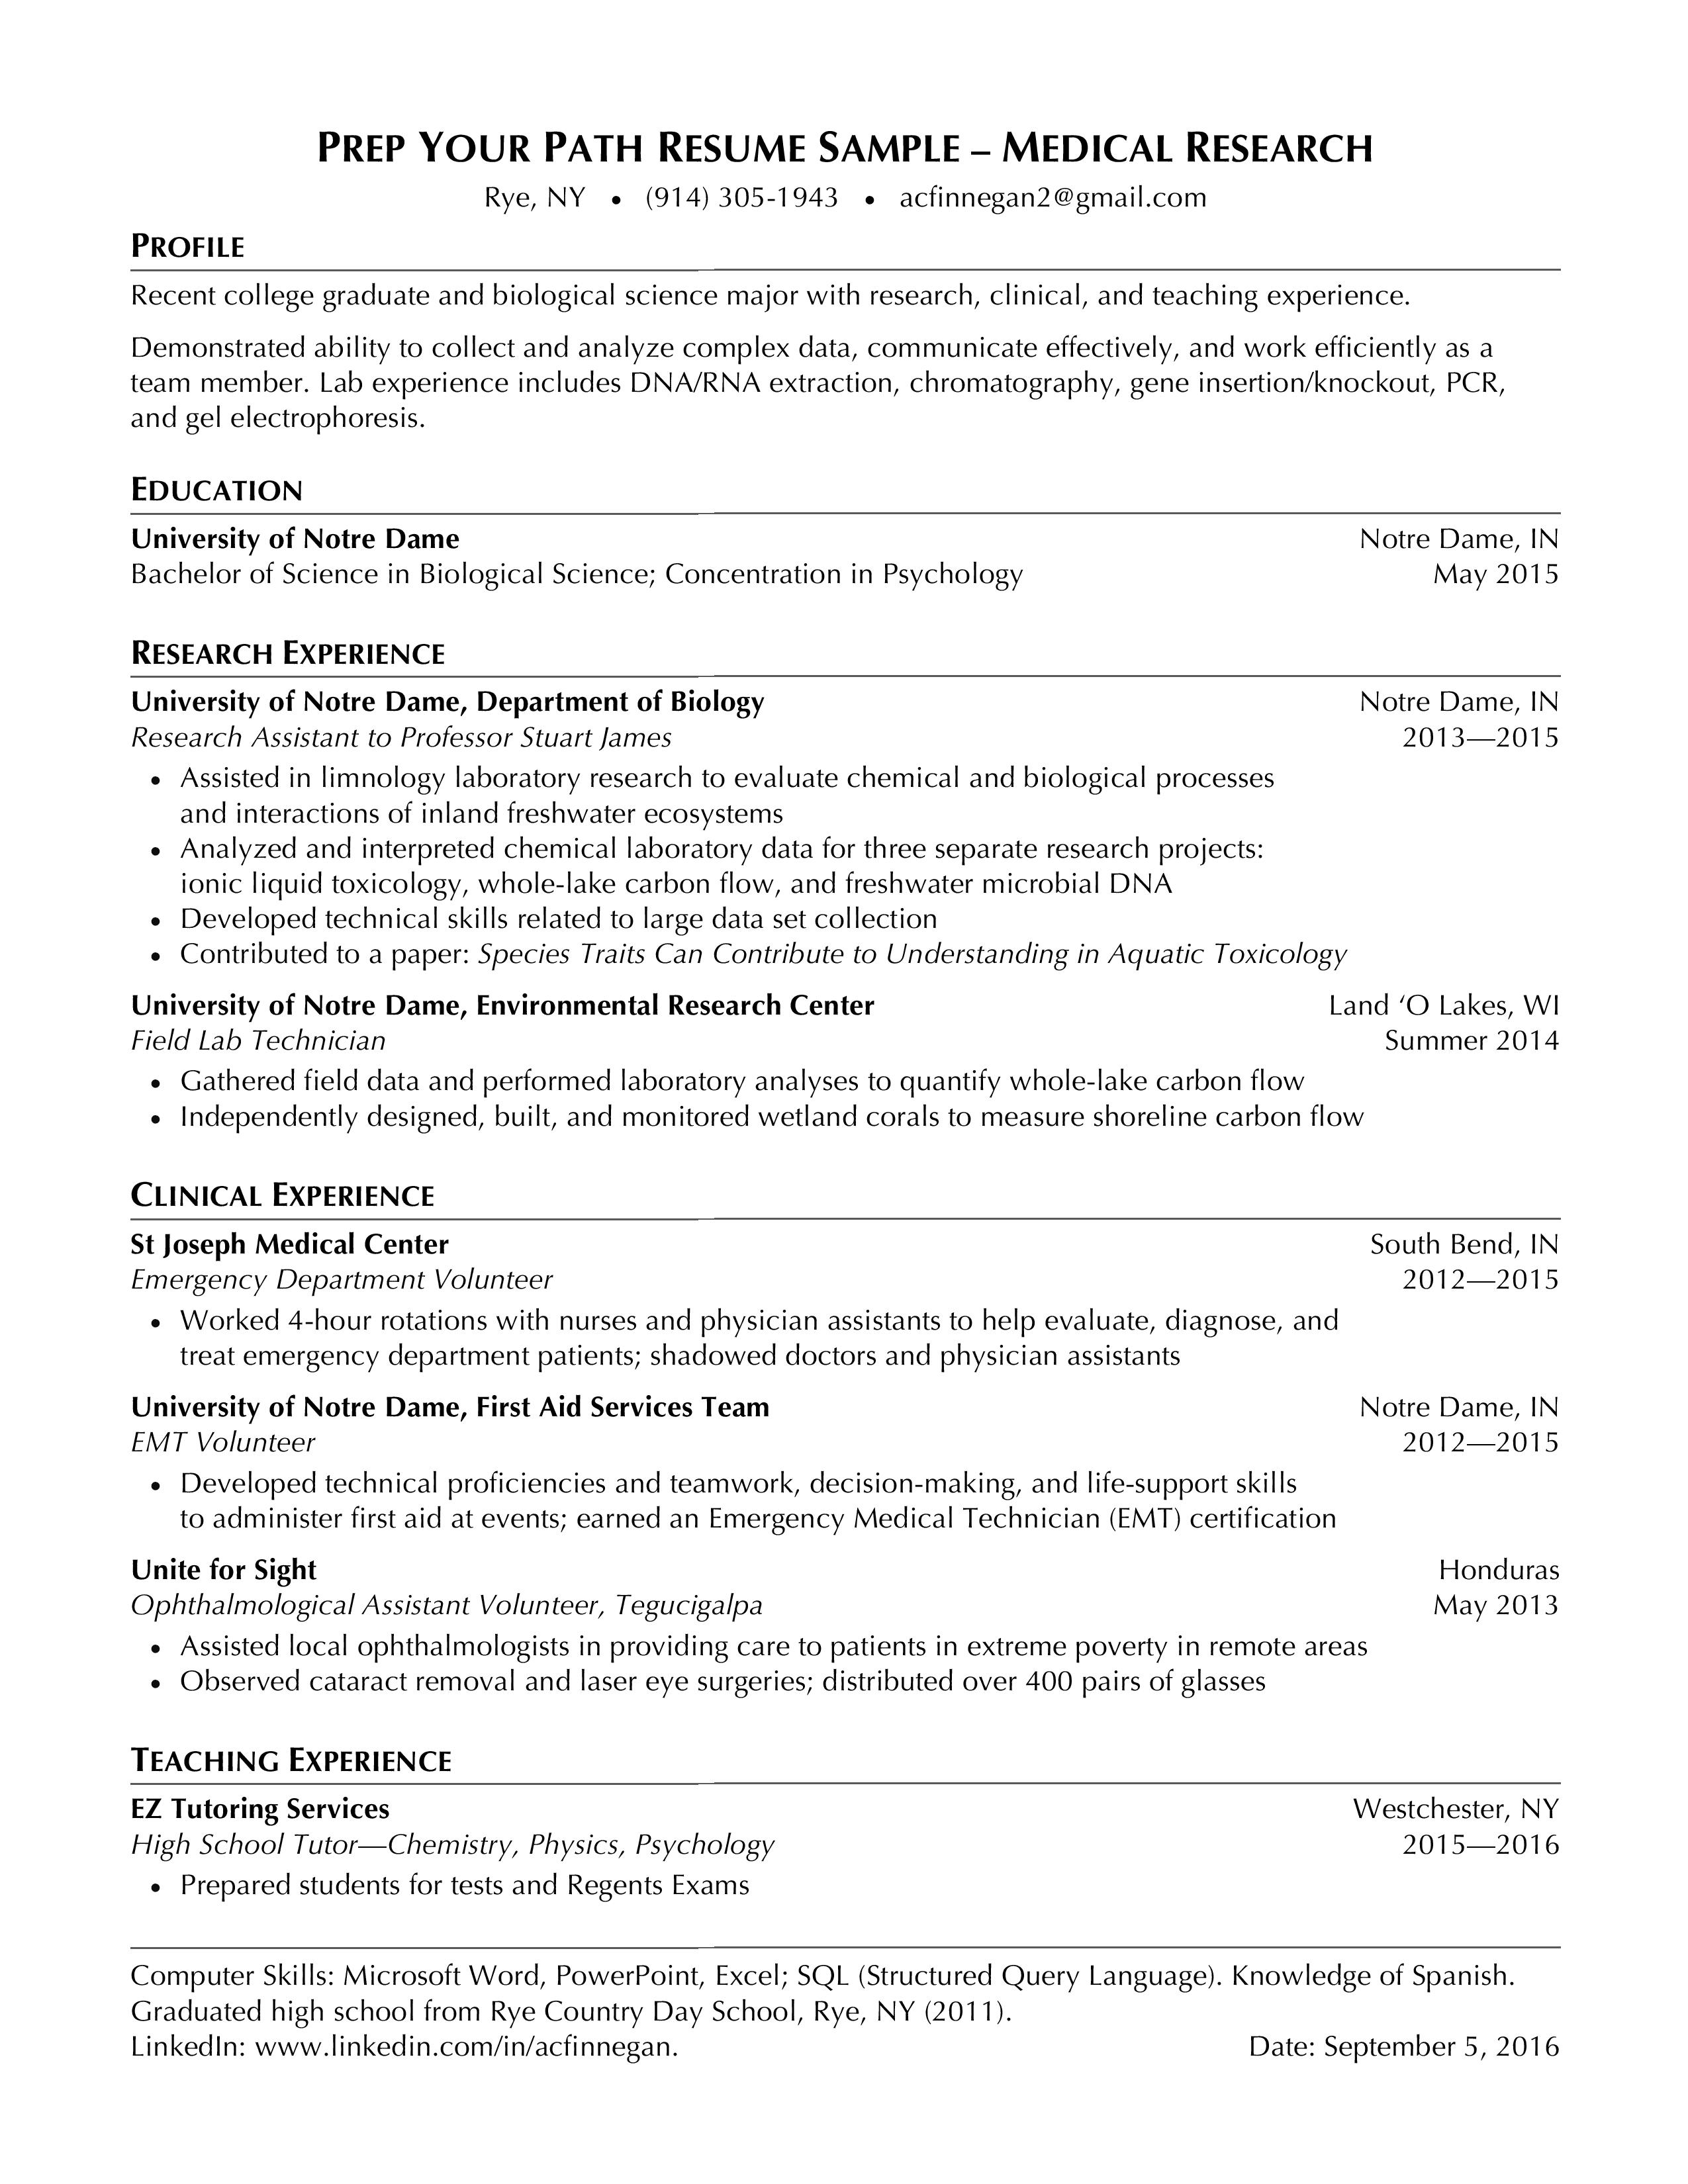 Targeted #1 Resume